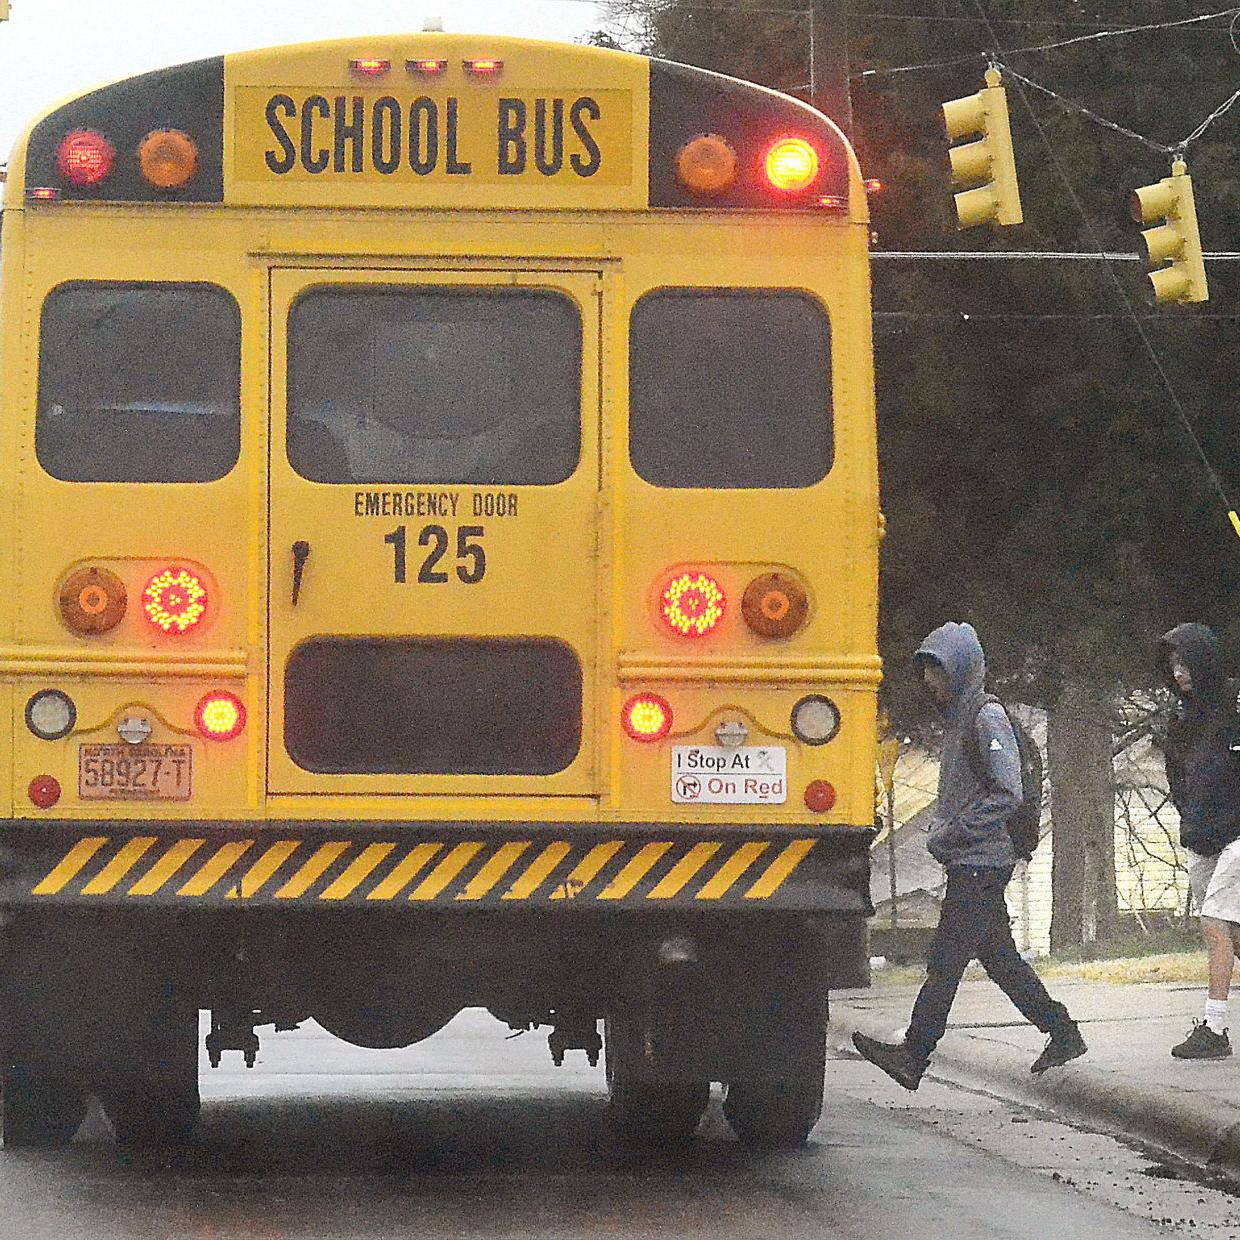 Is it time for seat belts on school buses? Adding safety